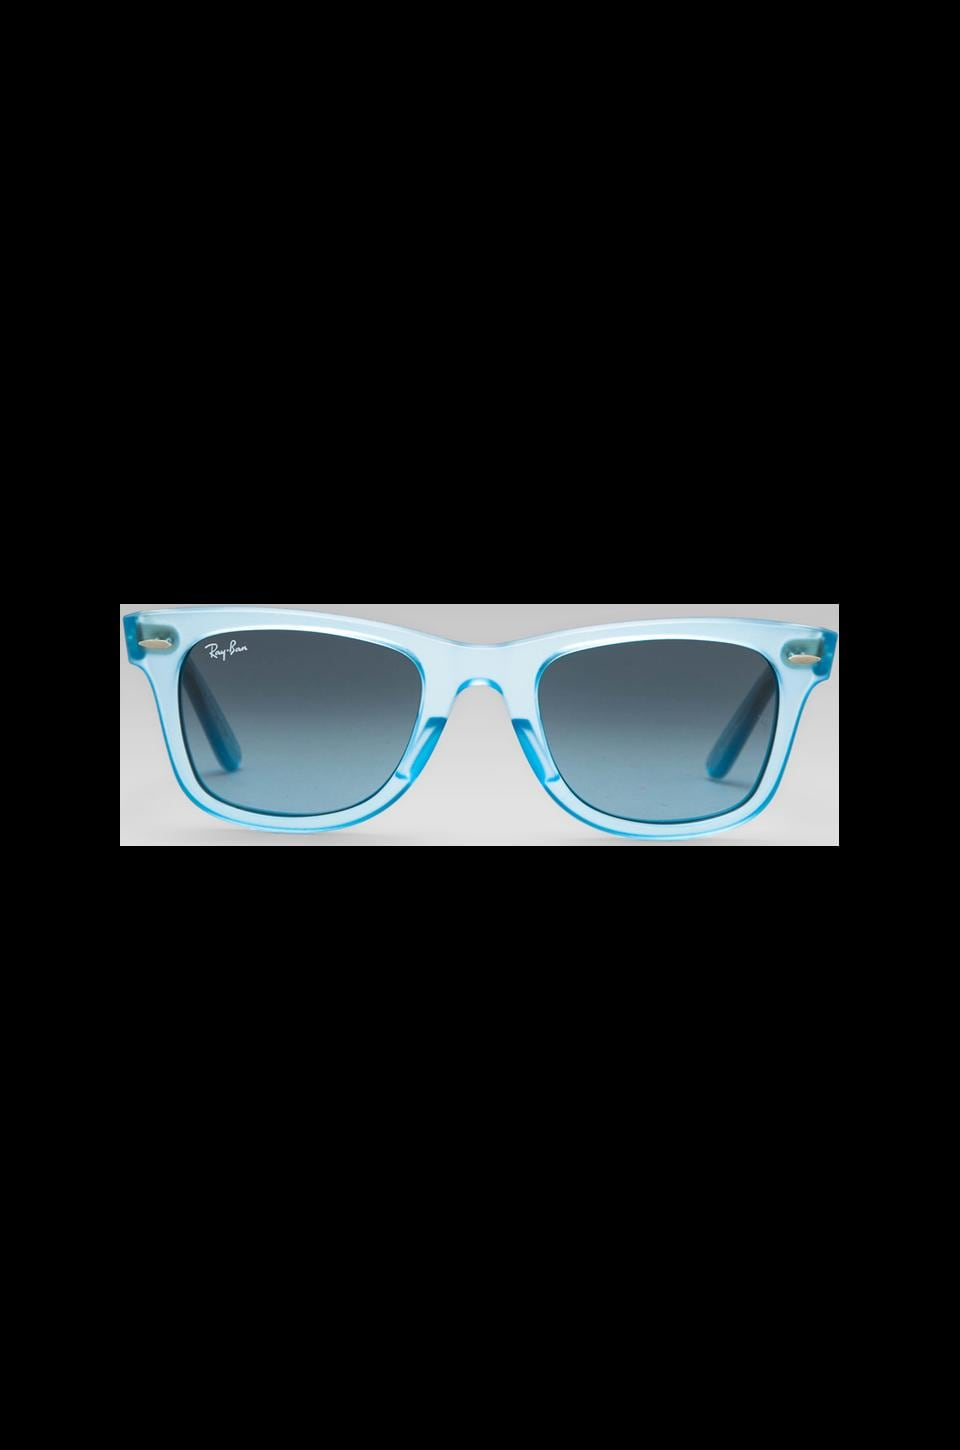 Ray-Ban Ice-Pop Collection in Blueberry